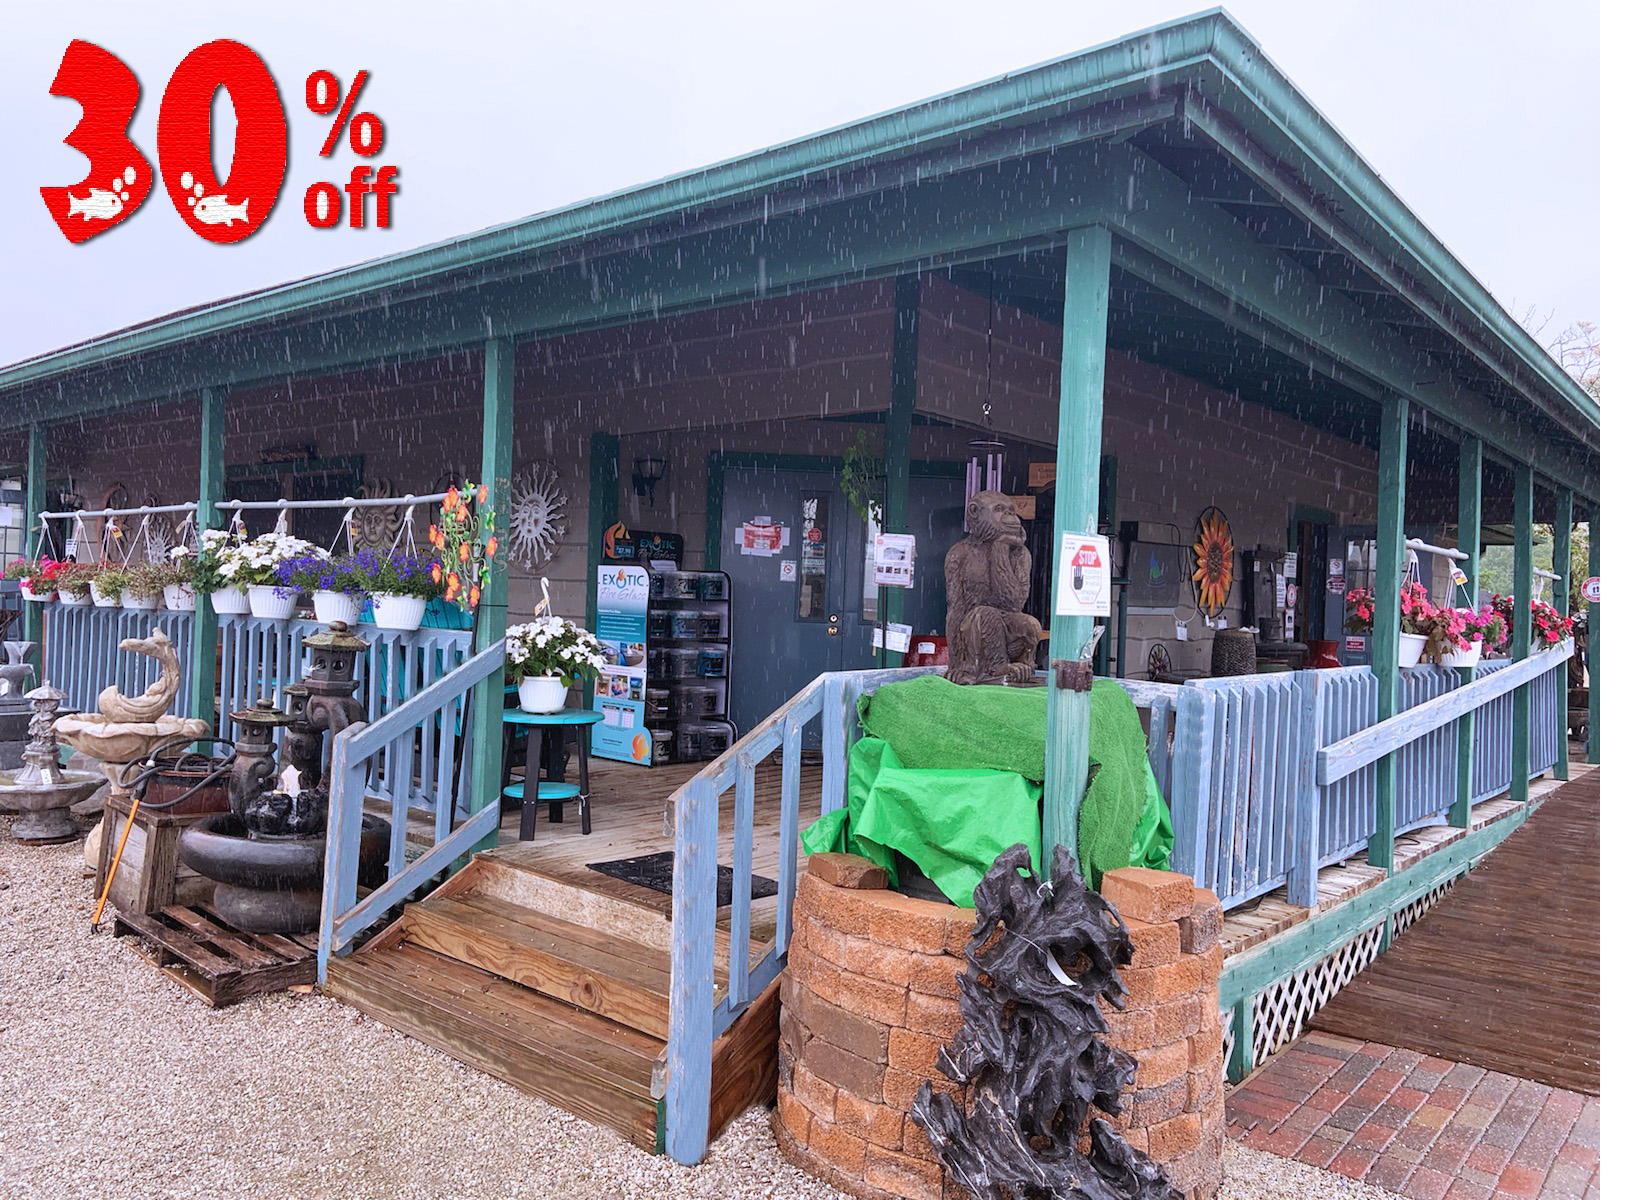 Save 30% on all items on the Porch!